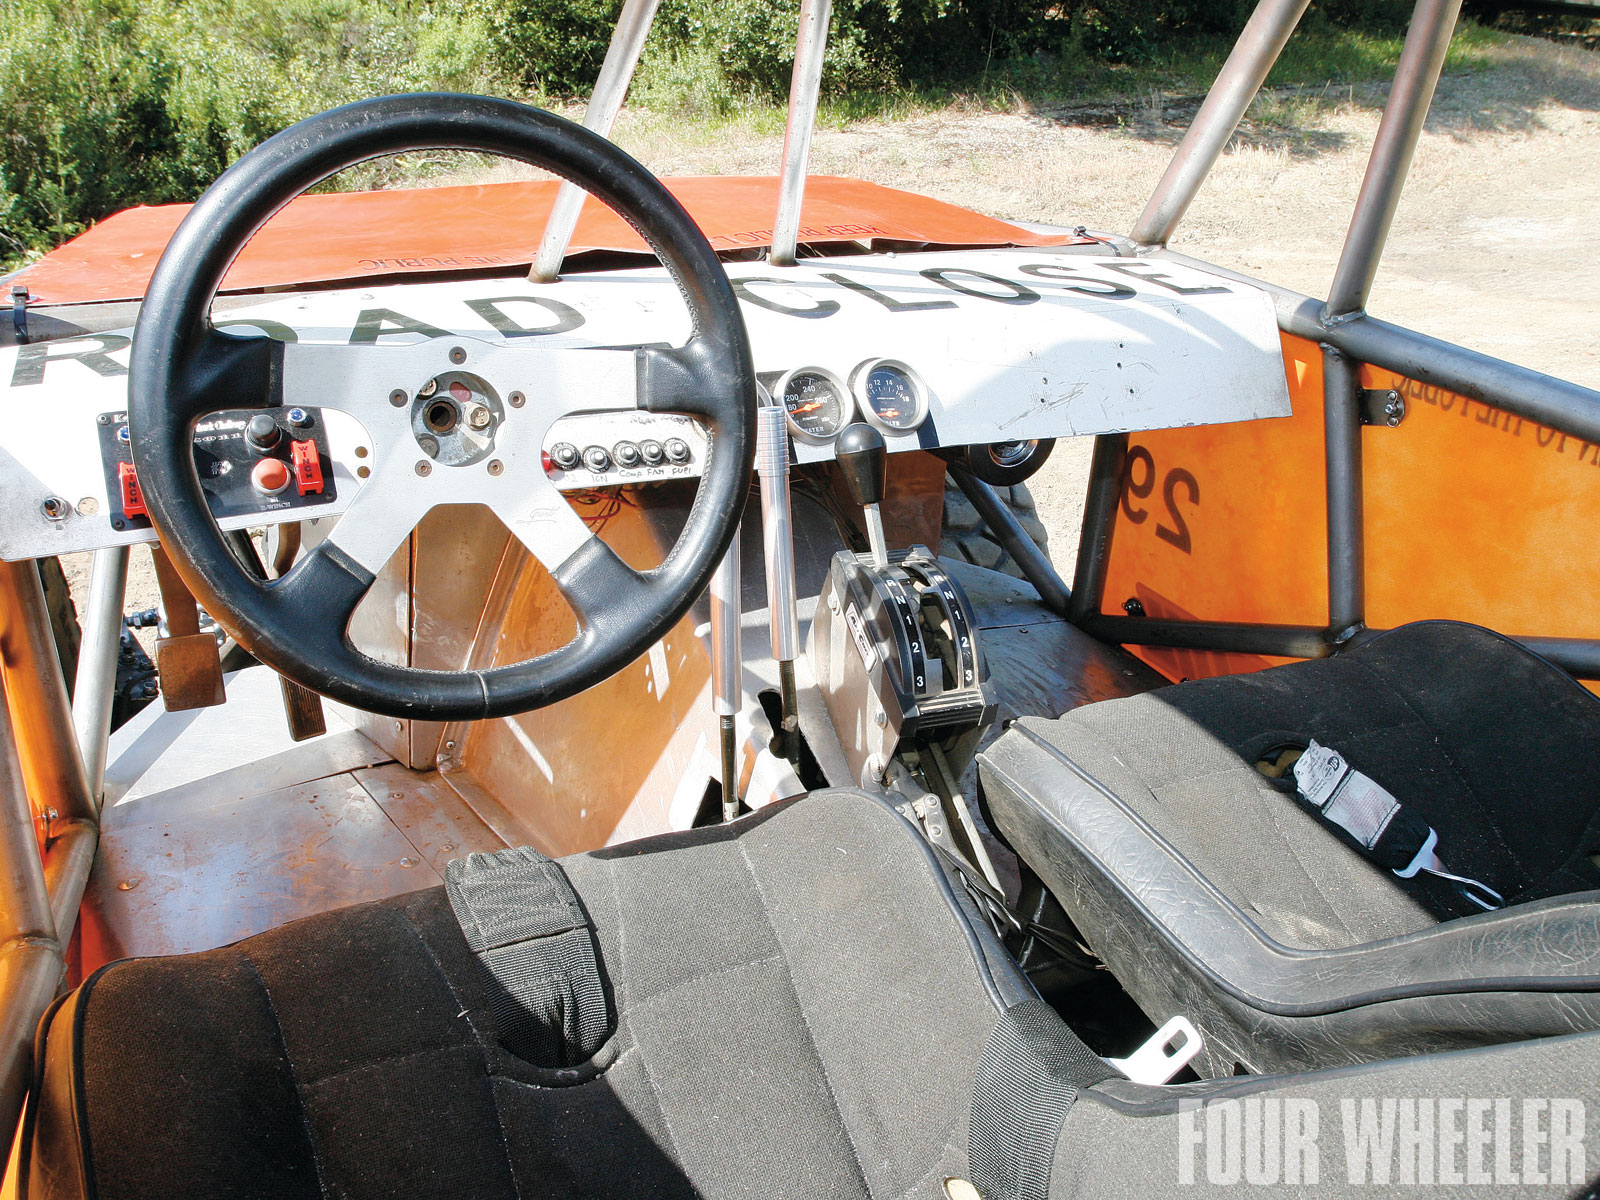 Brian Whitford 2010 11Th Hour Chassis Buggy Interior Shot